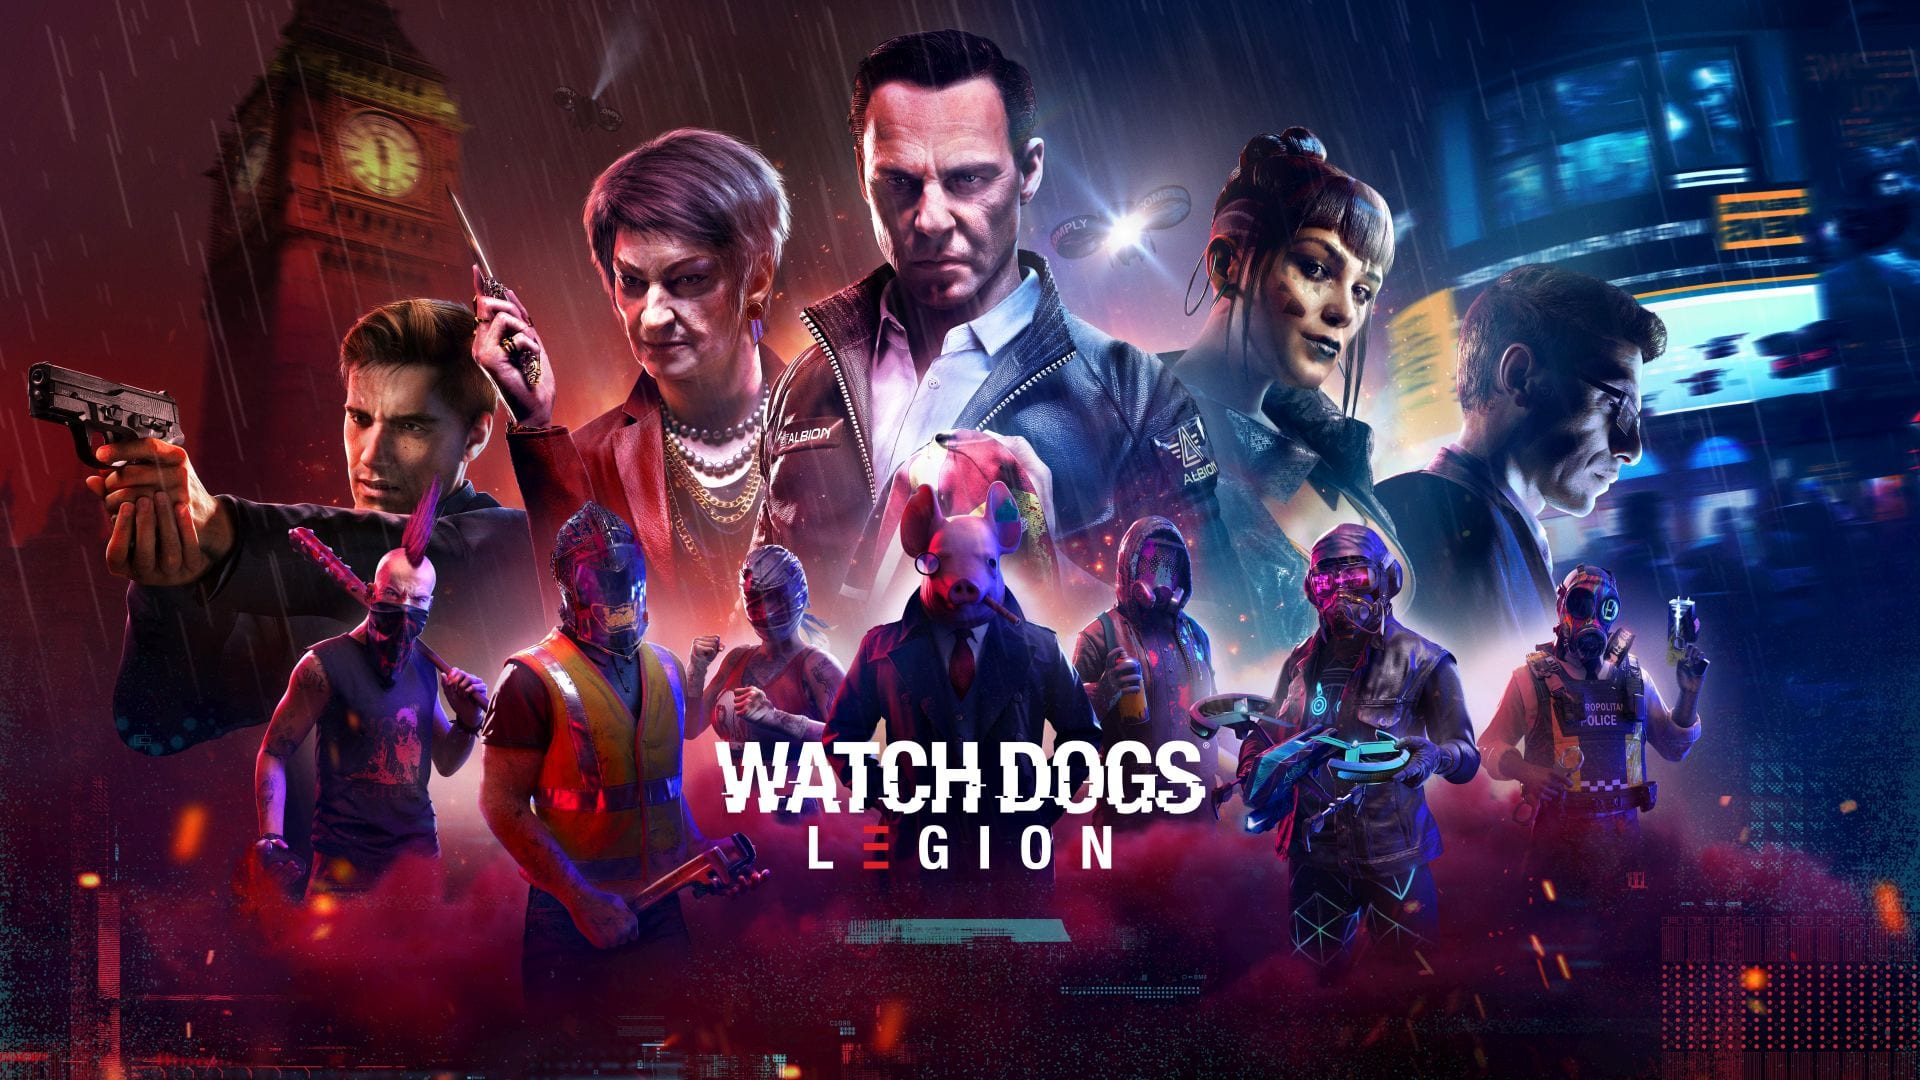 New Watch Dogs Legion Trailer Shows Characters With Funny Class